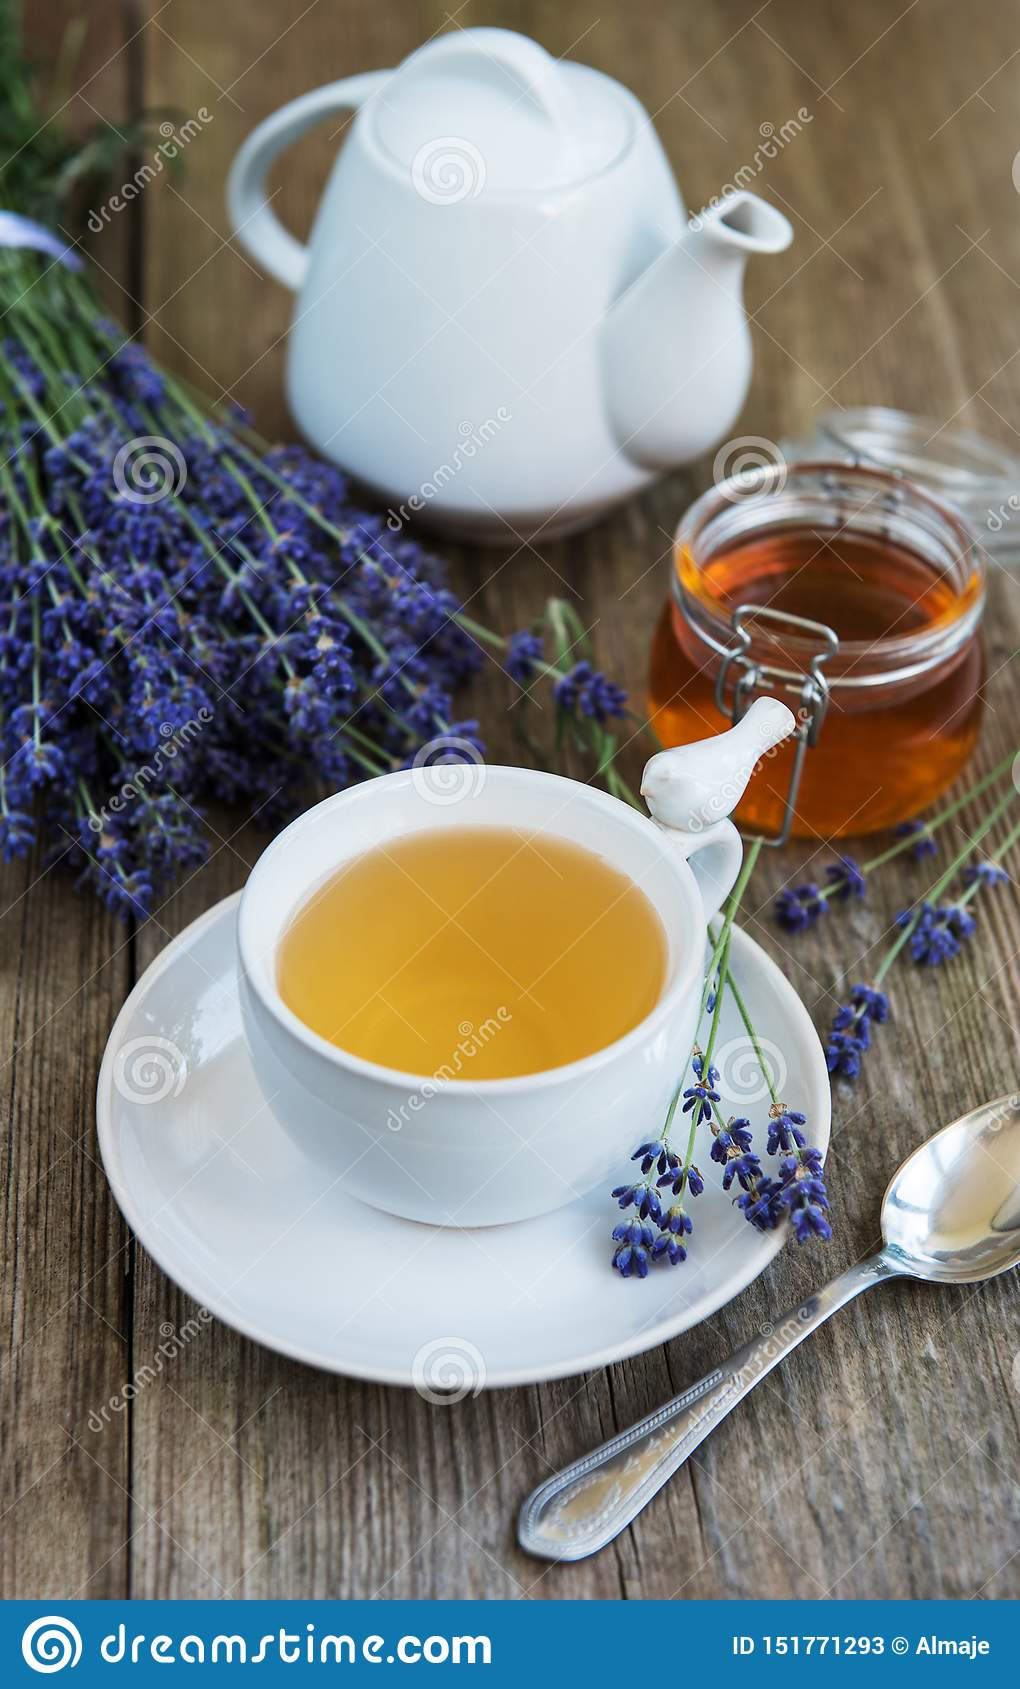 Cup of tea and honey with lavender flowers